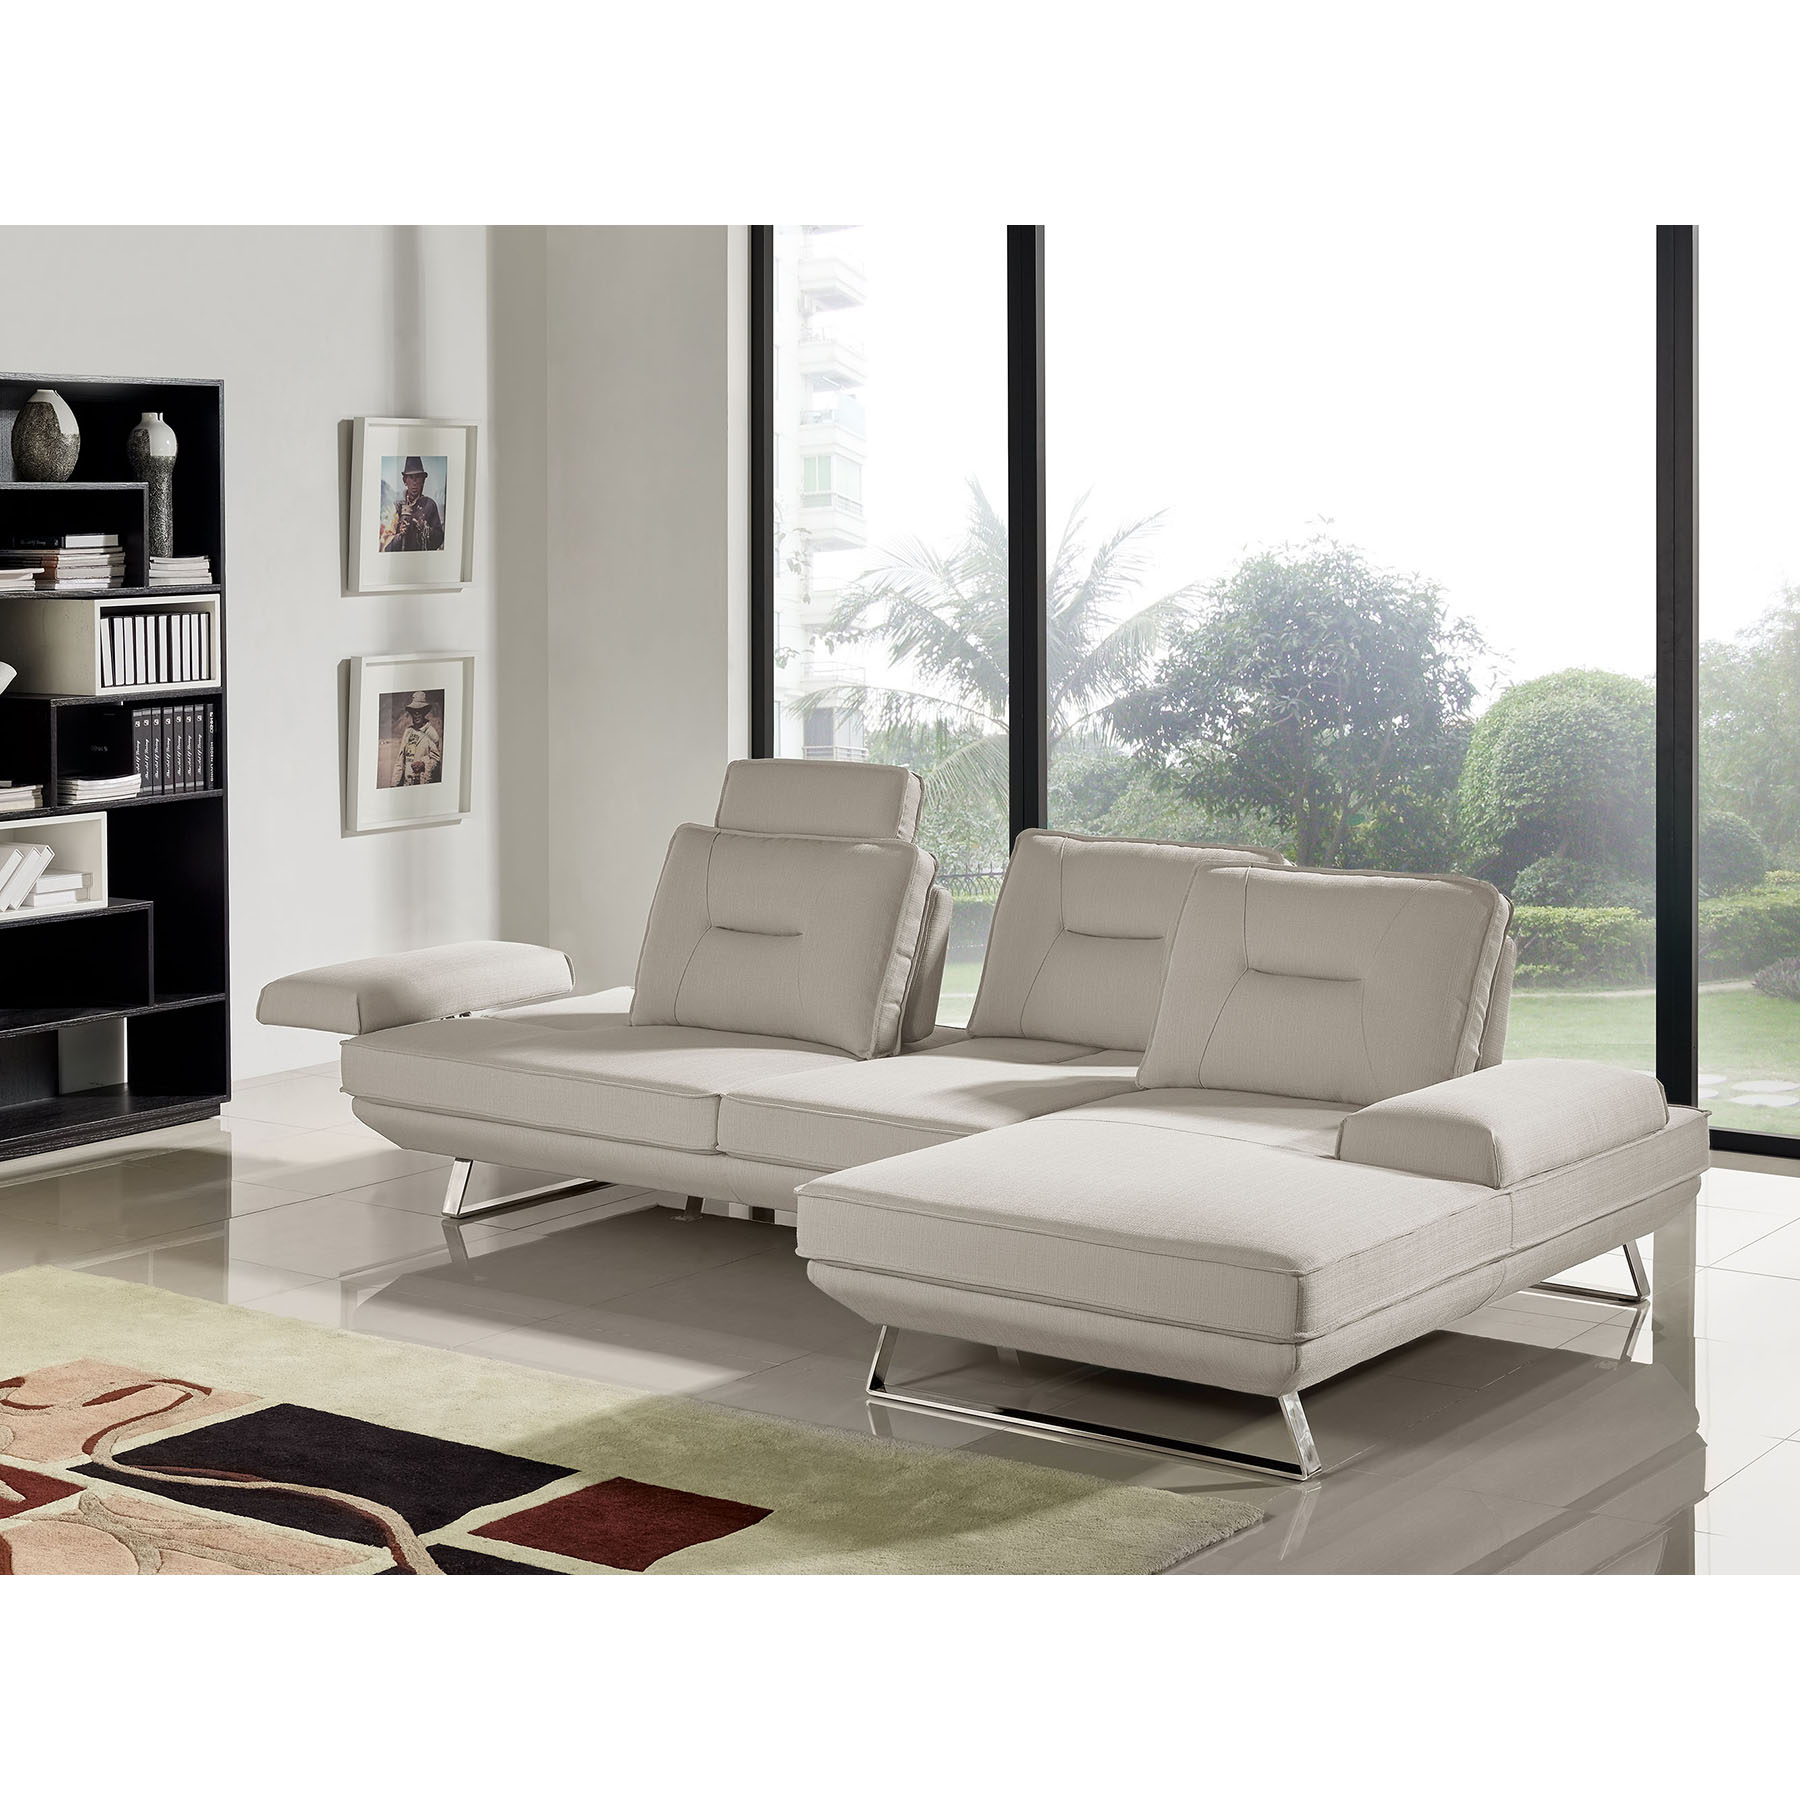 Contempo 2 Piece Sectional With Left Arm Facing Sofa   Adjustable Backrest,  ...